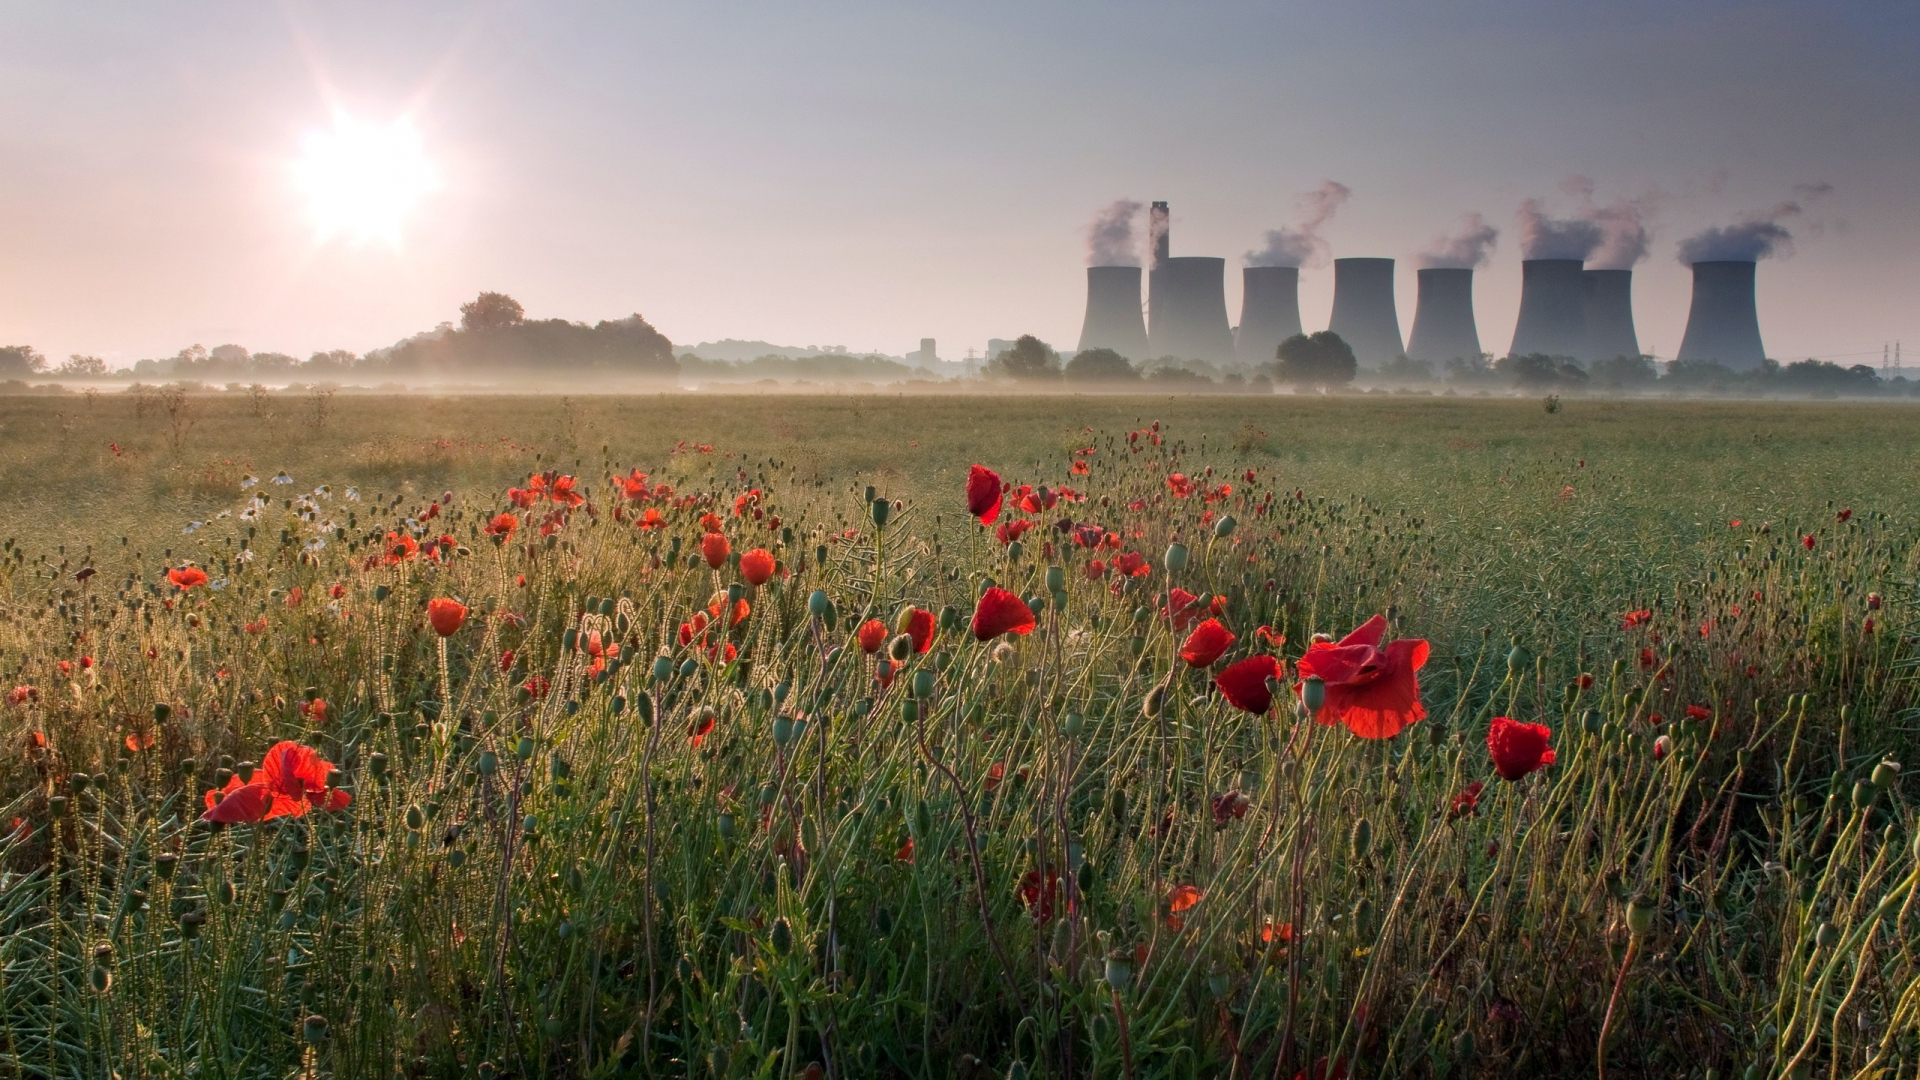 poppy_fields_near_power_plan